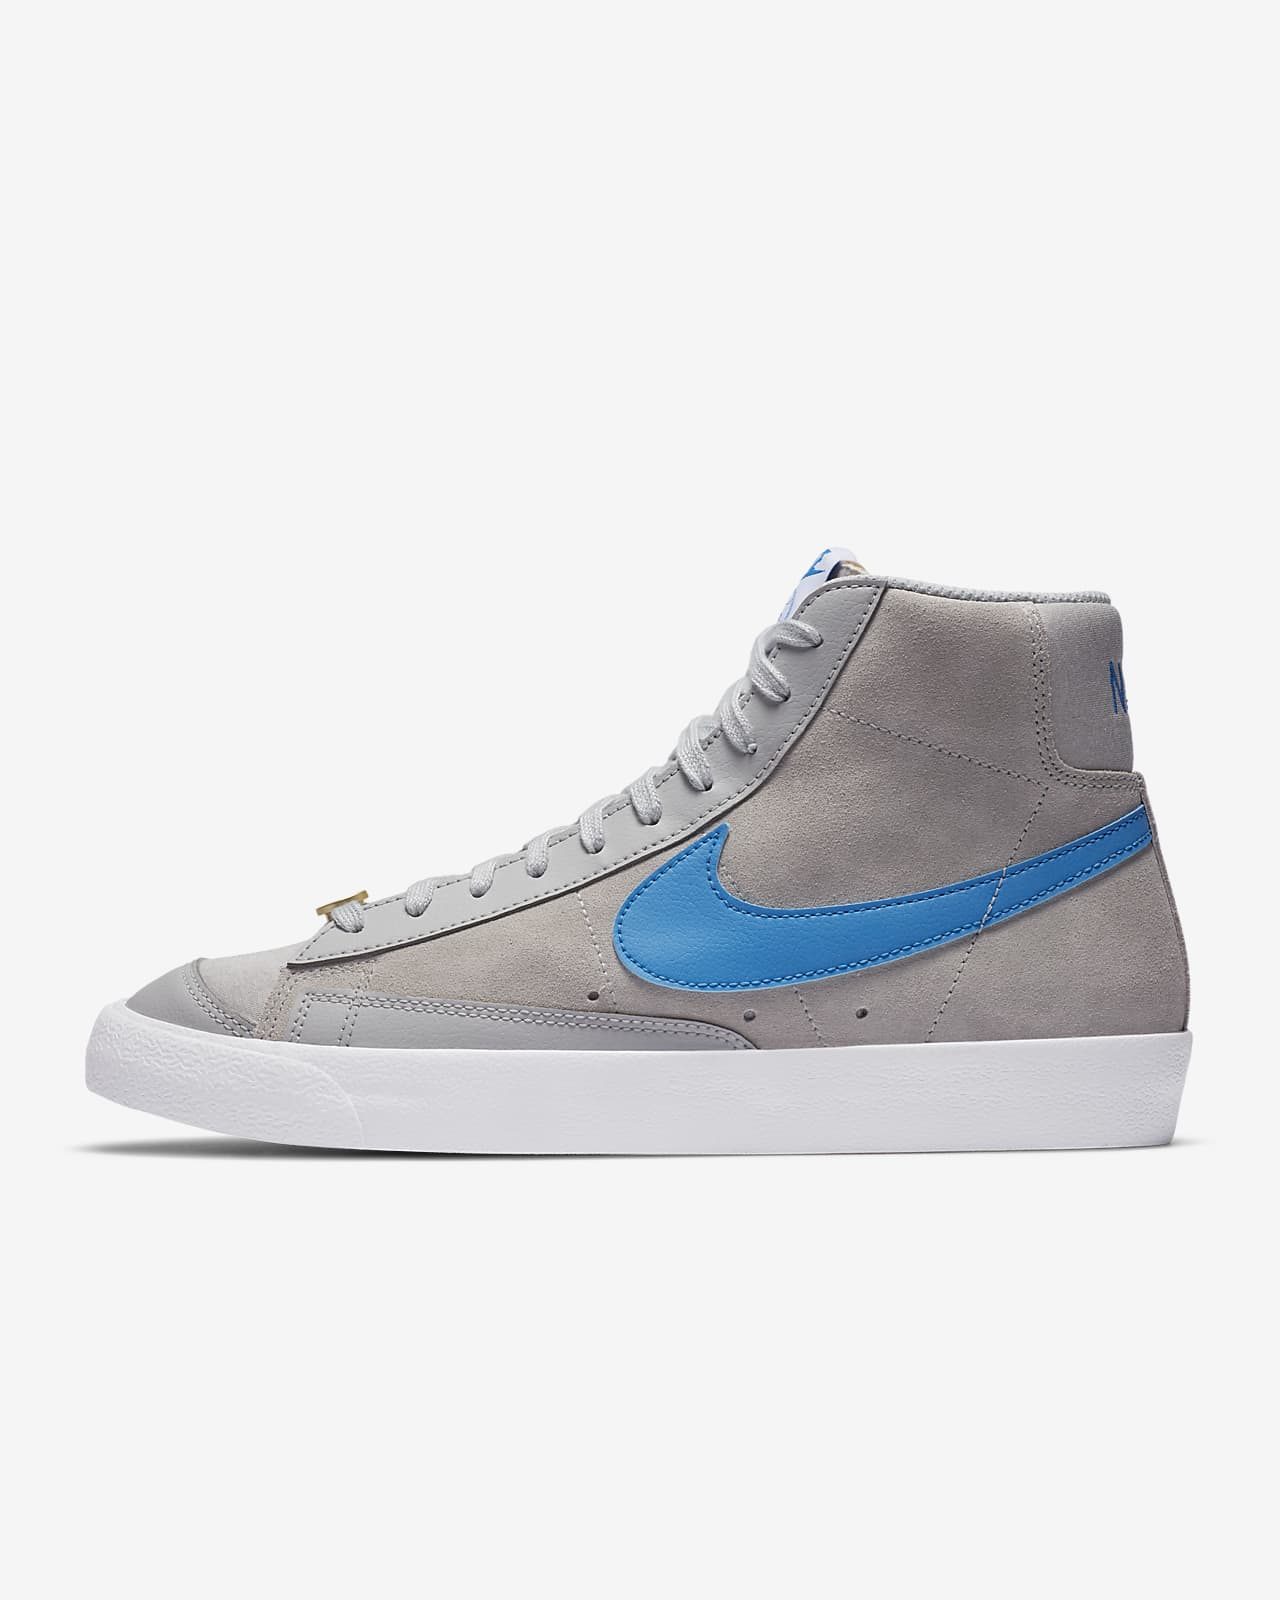 Chaussure Nike Blazer Mid '77 NRG pour Homme